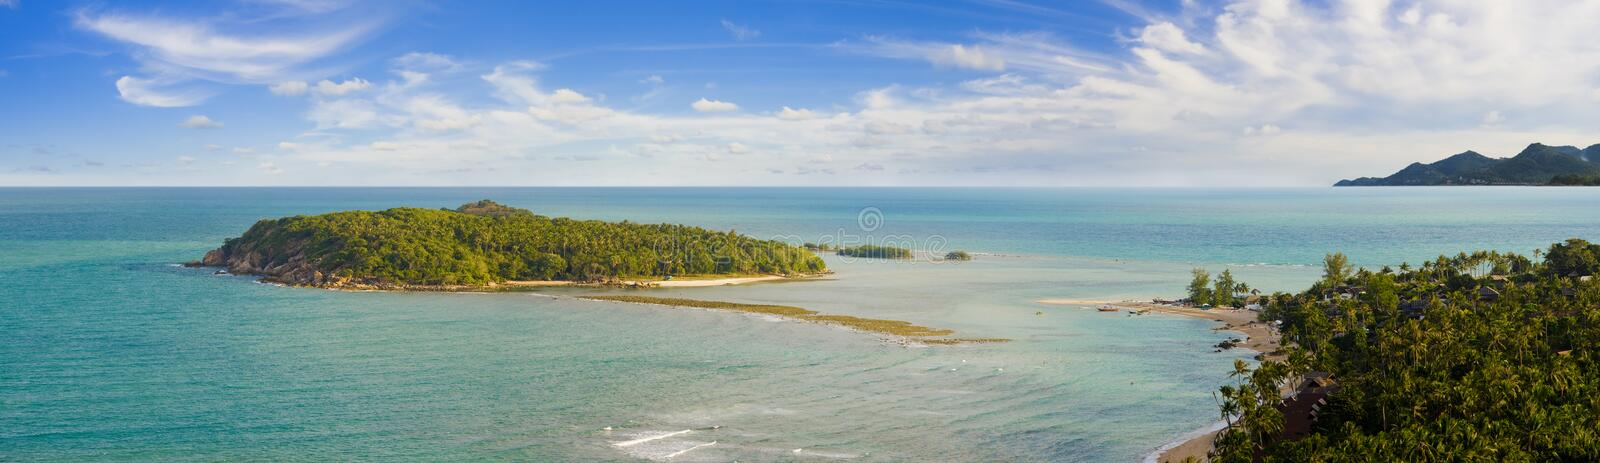 Bird view on koh samui royalty free stock images